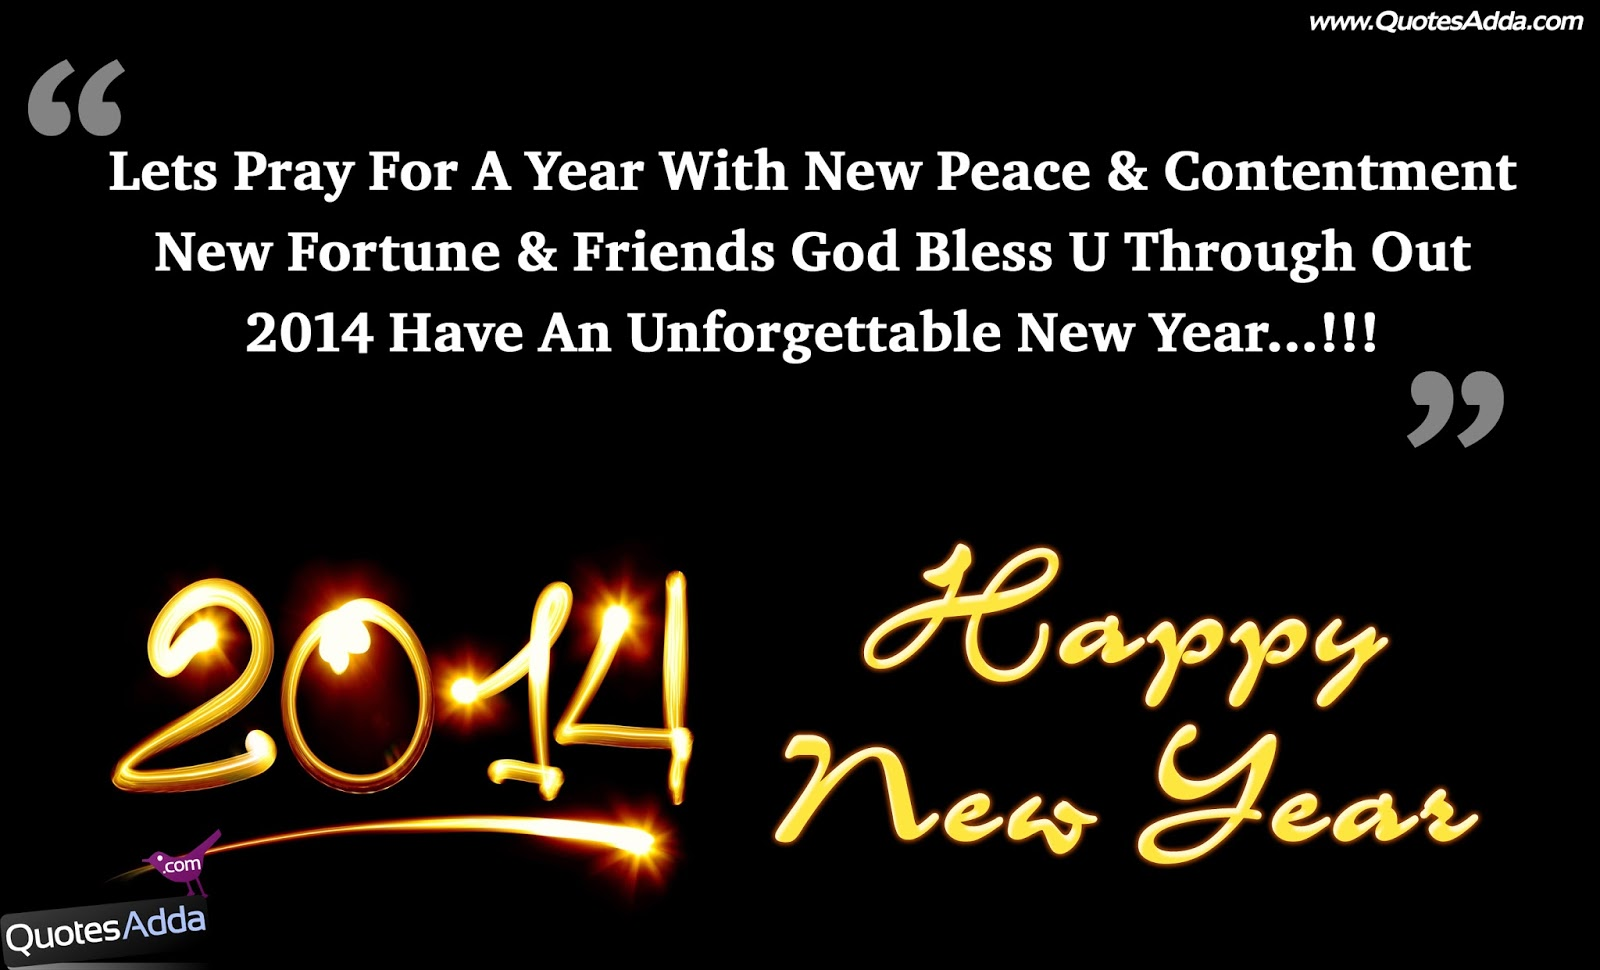 Happy New Year Message.5 How To Say Happy New Year Wishes 2014